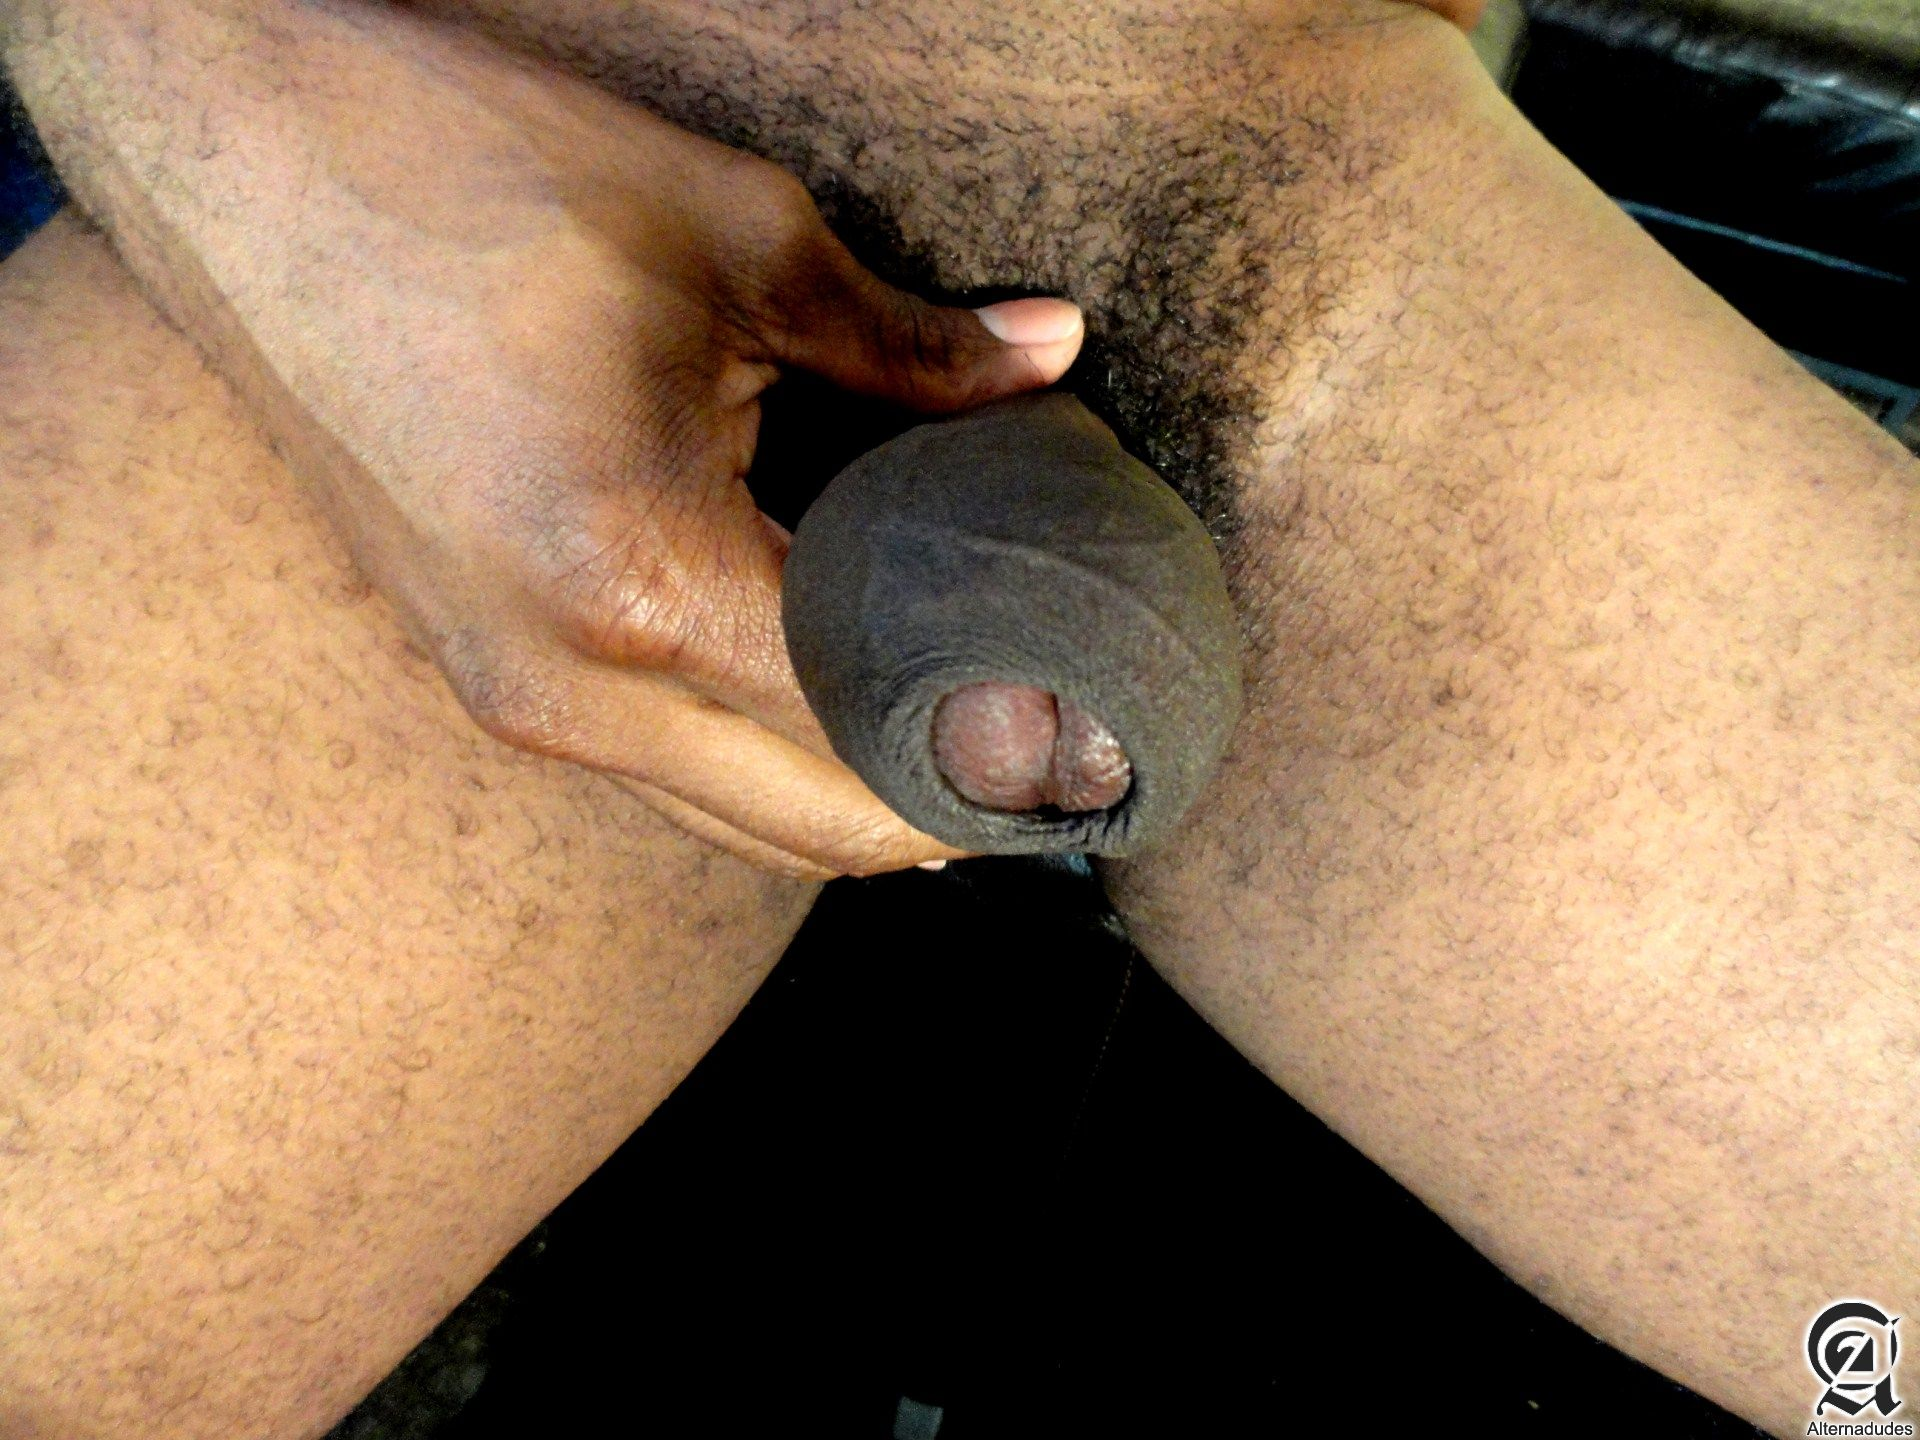 Big black uncut penis